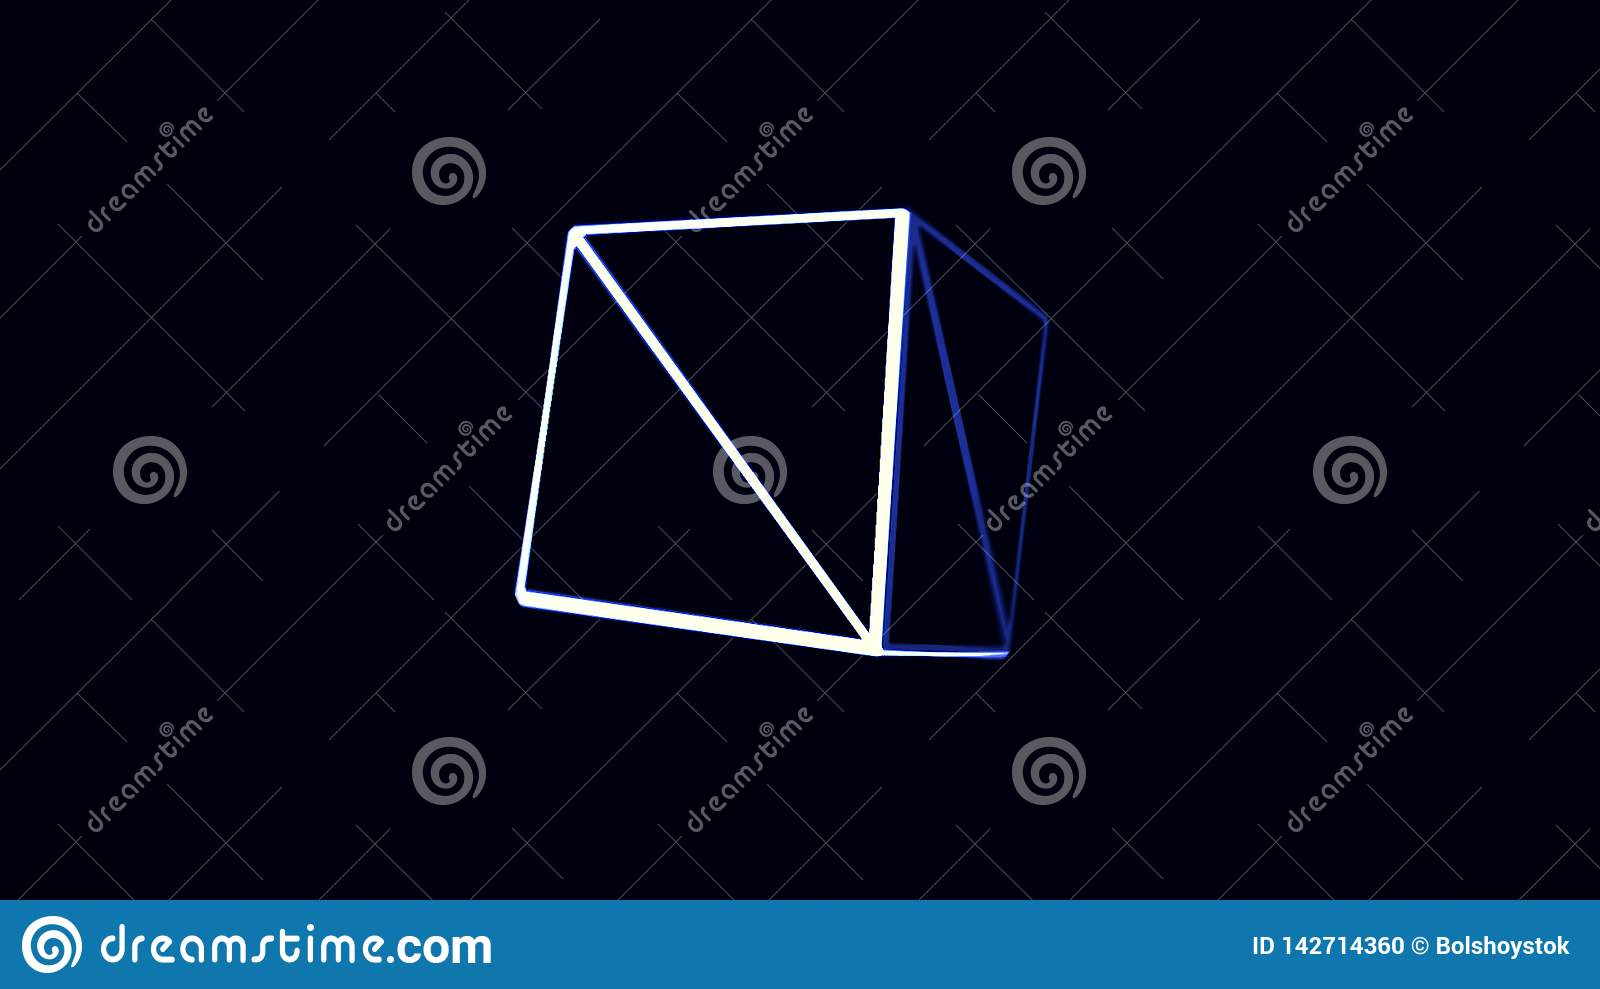 Animation With Blue And White Cube Edges Rotating On Black